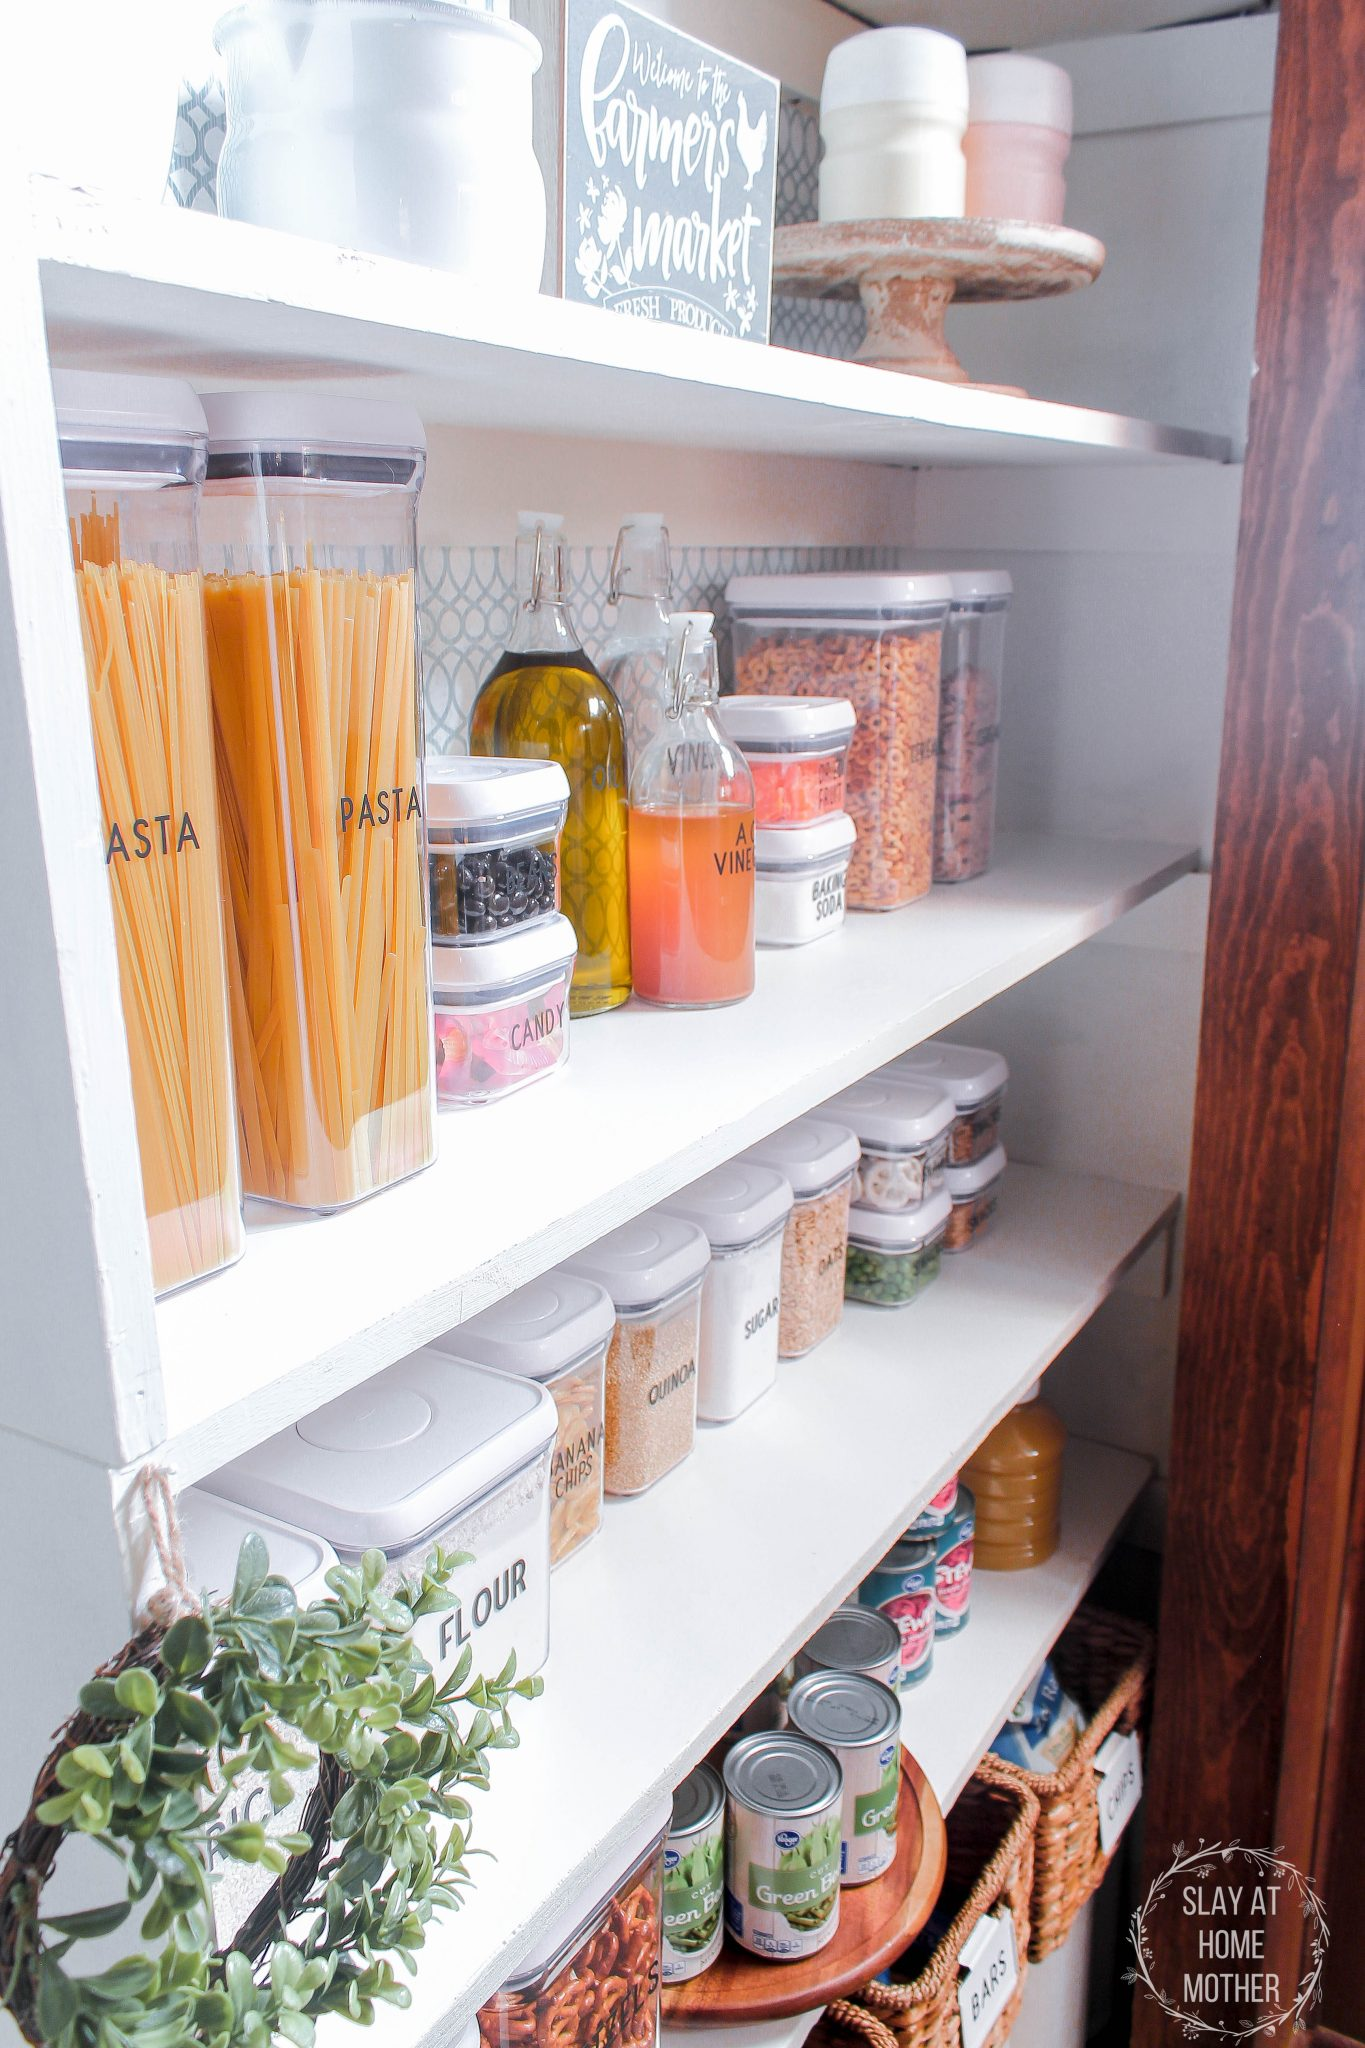 Farmhouse Pantry Organization And Refresh With OXO - SlayAtHomeMother.com